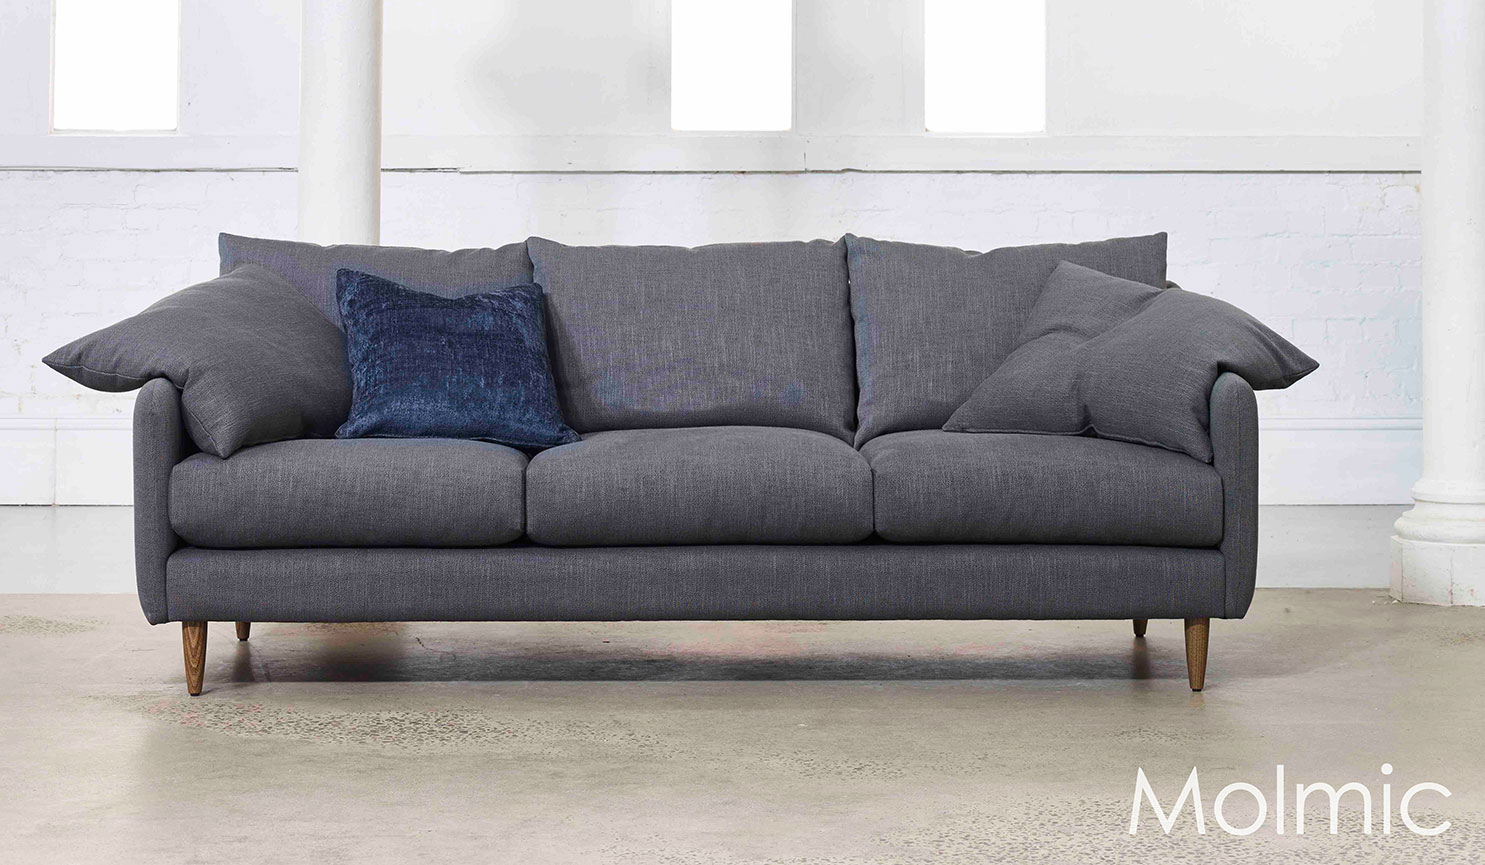 Floyd 3.5 seater sofa in Axiom Storm fabric with Bluescatter (fabric) cushion